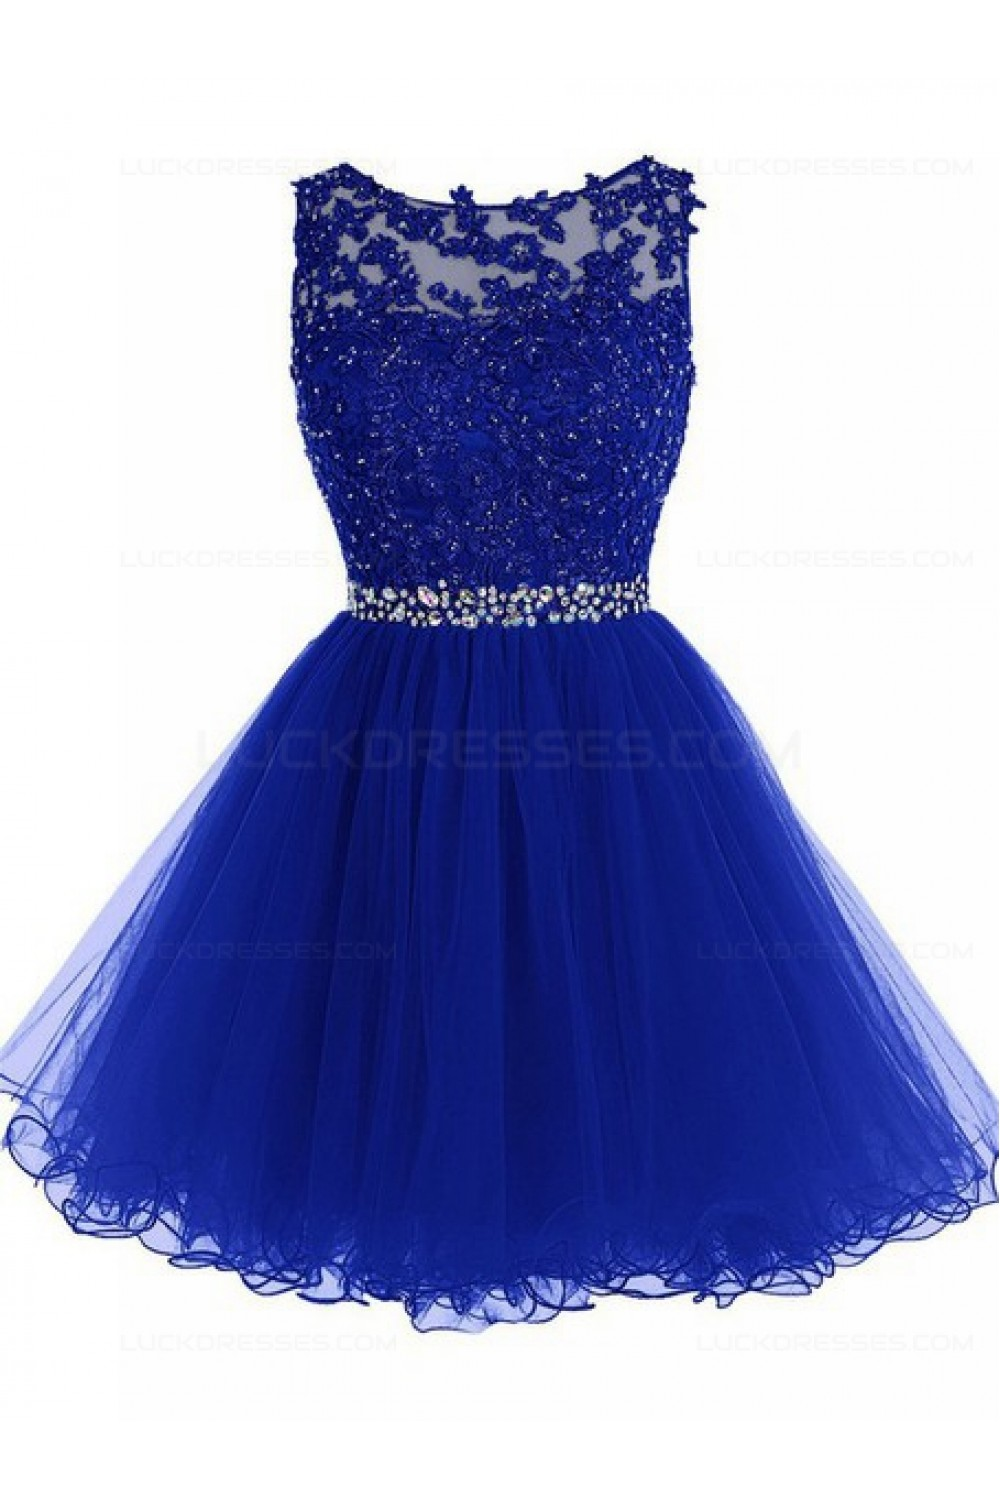 Beaded Short Royal Blue Lace Appliques Tulle Prom Evening Homecoming ...